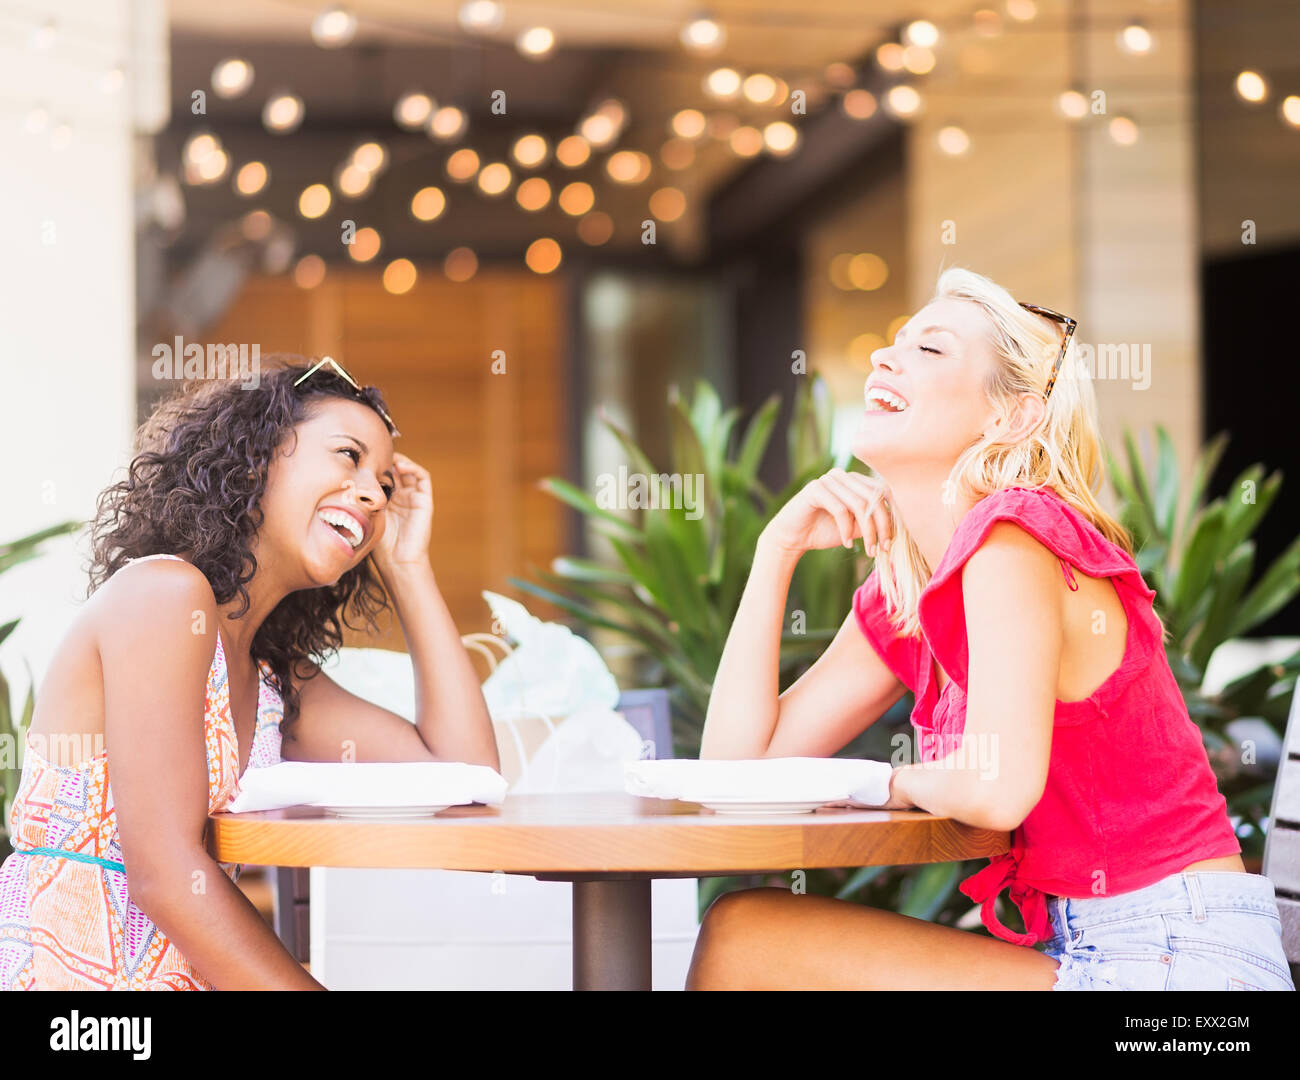 Female friends laughing in street cafe - Stock Image